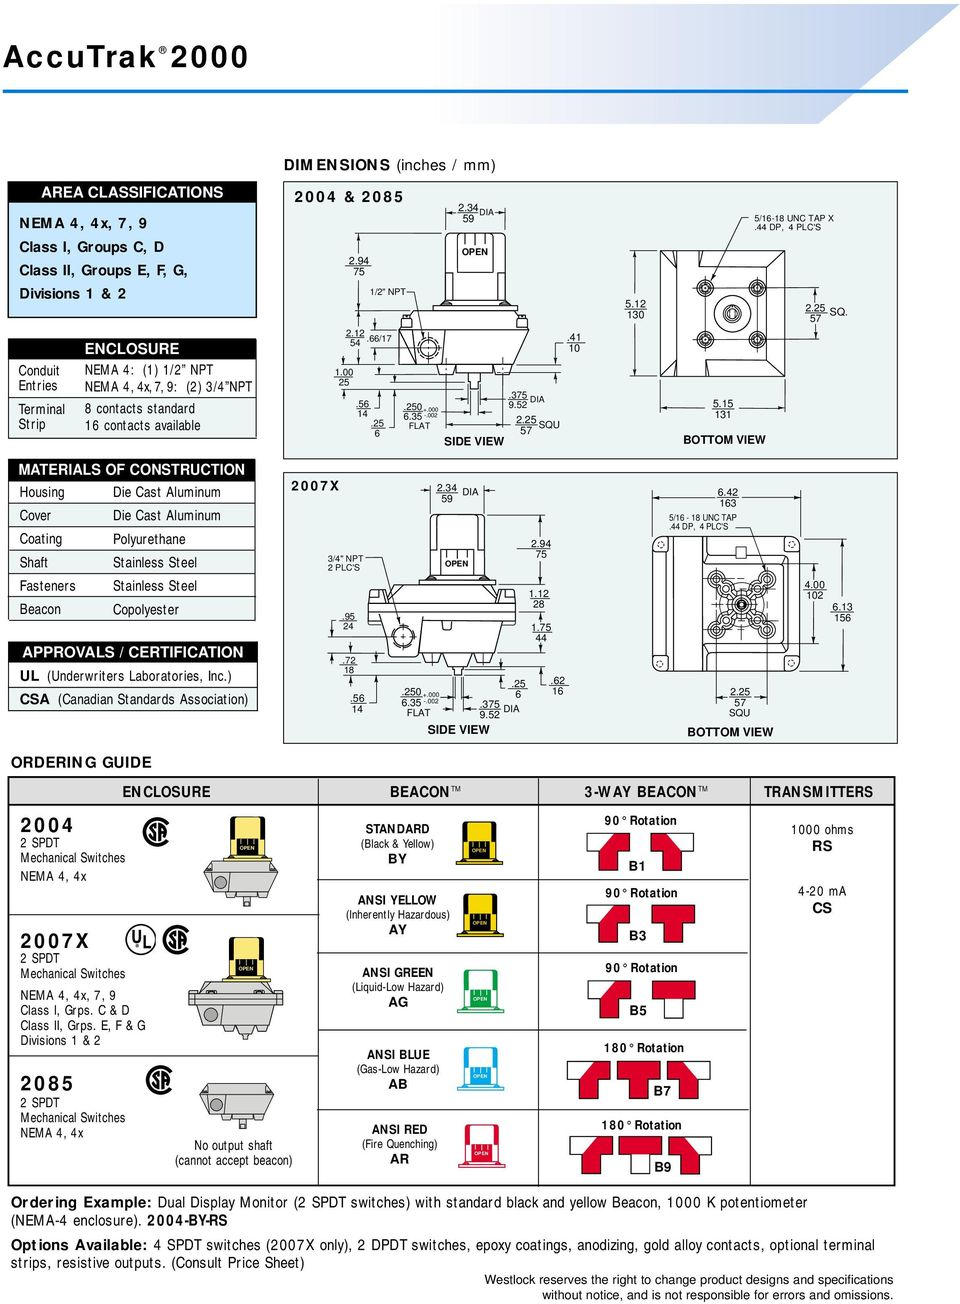 Accutrak Rotary Valve Position Monitors Spdt Switch Wiring Diagram Foot 41 10 Bottom View 5